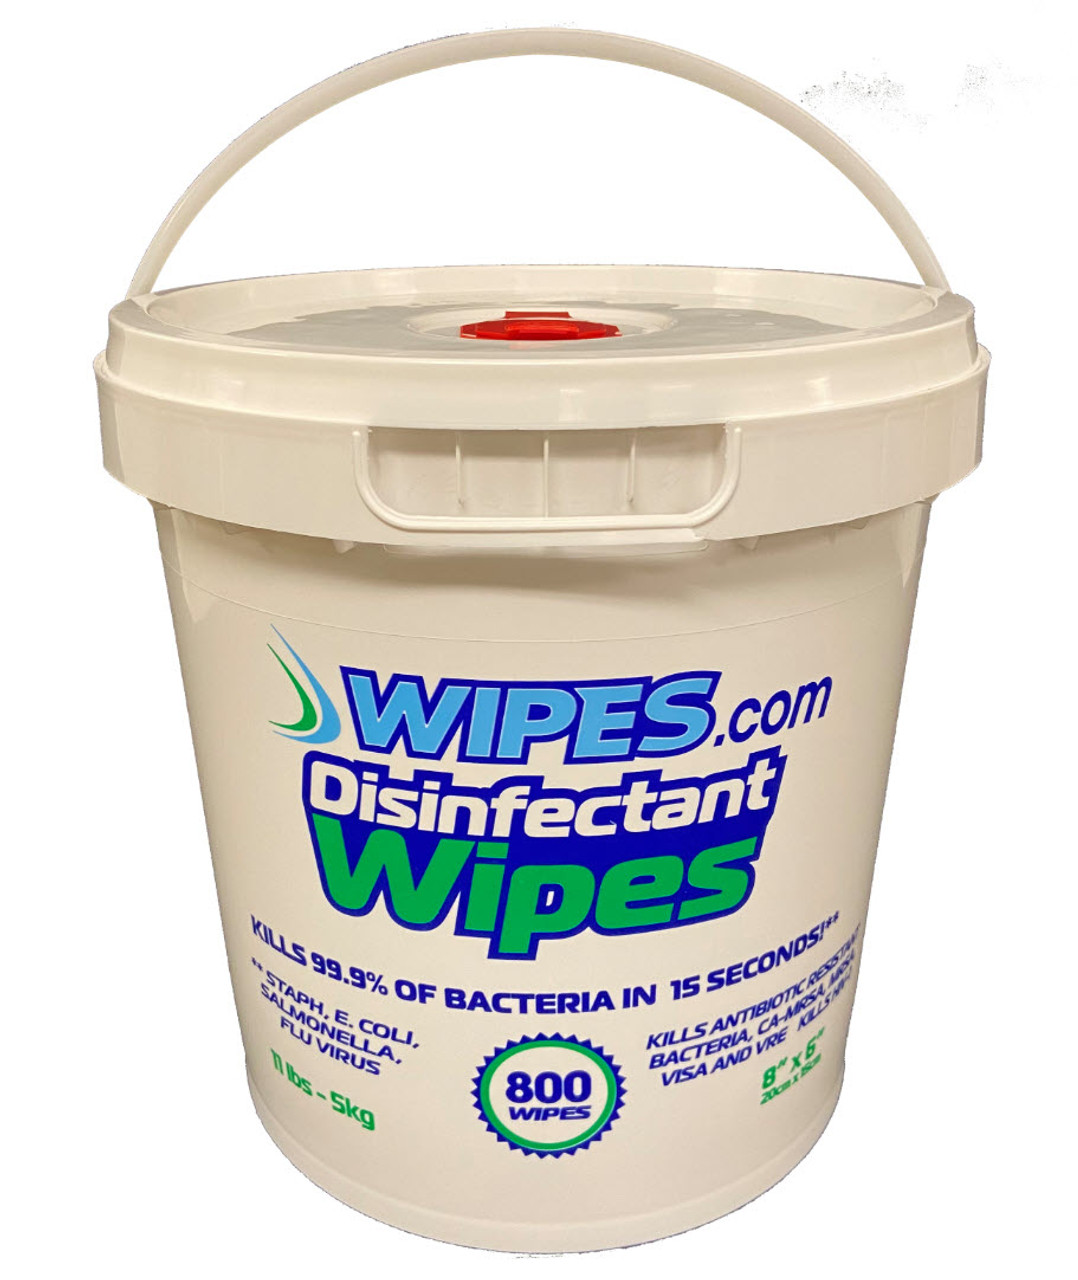 100 Buckets of Disinfecting Wipes - 800 wipes per